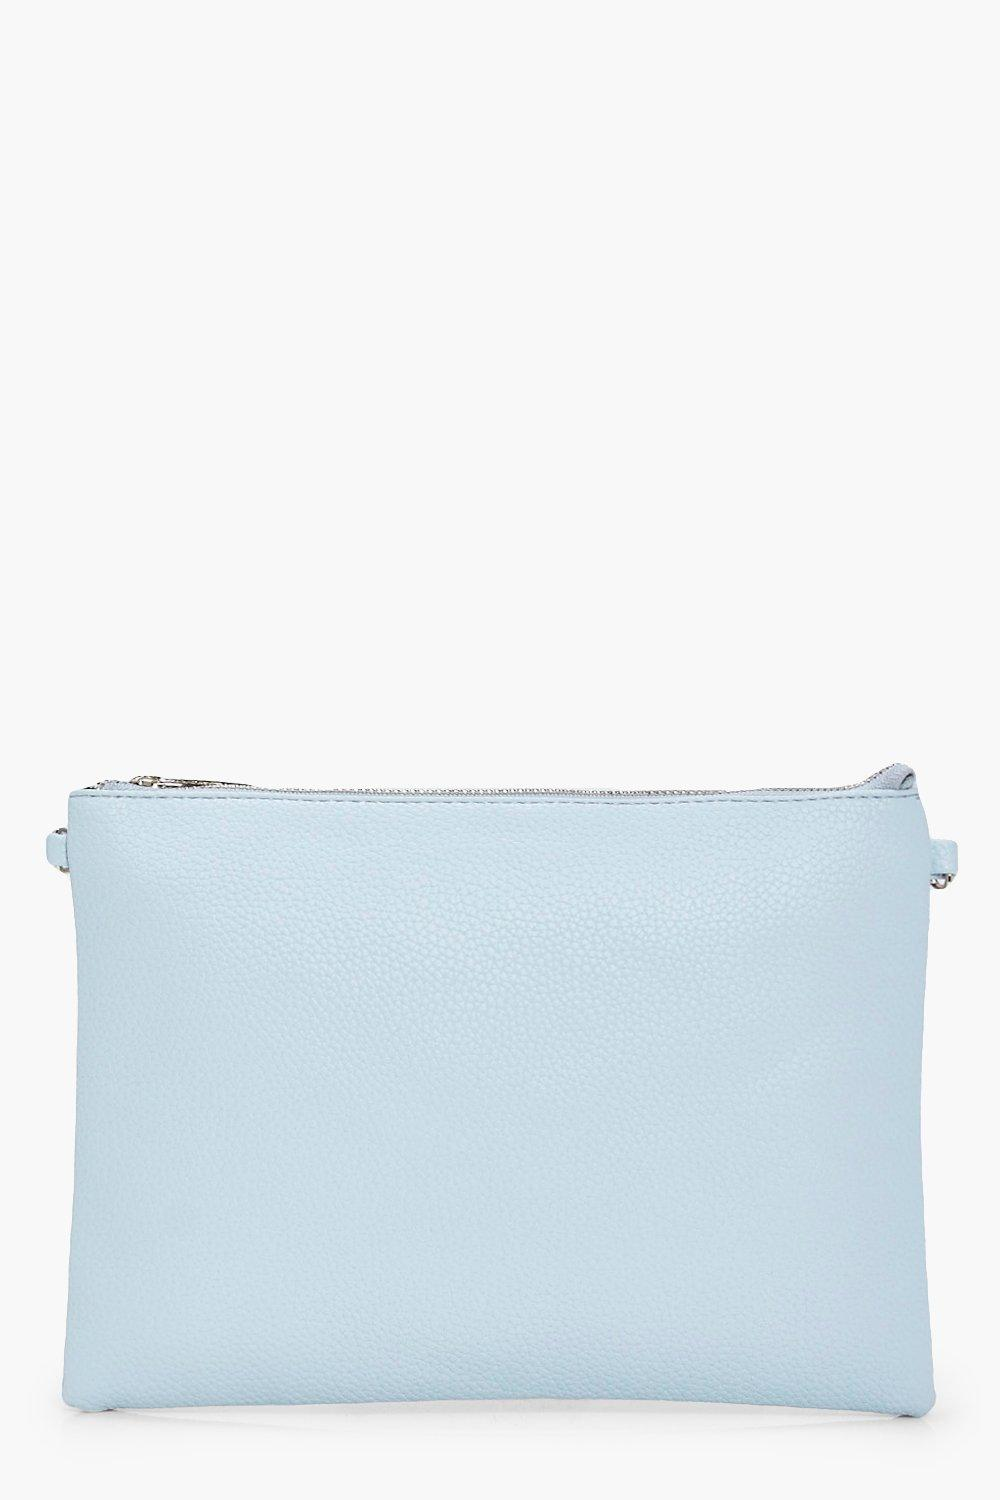 be8270264e Molly Zip Top Clutch Bag. Hover to zoom